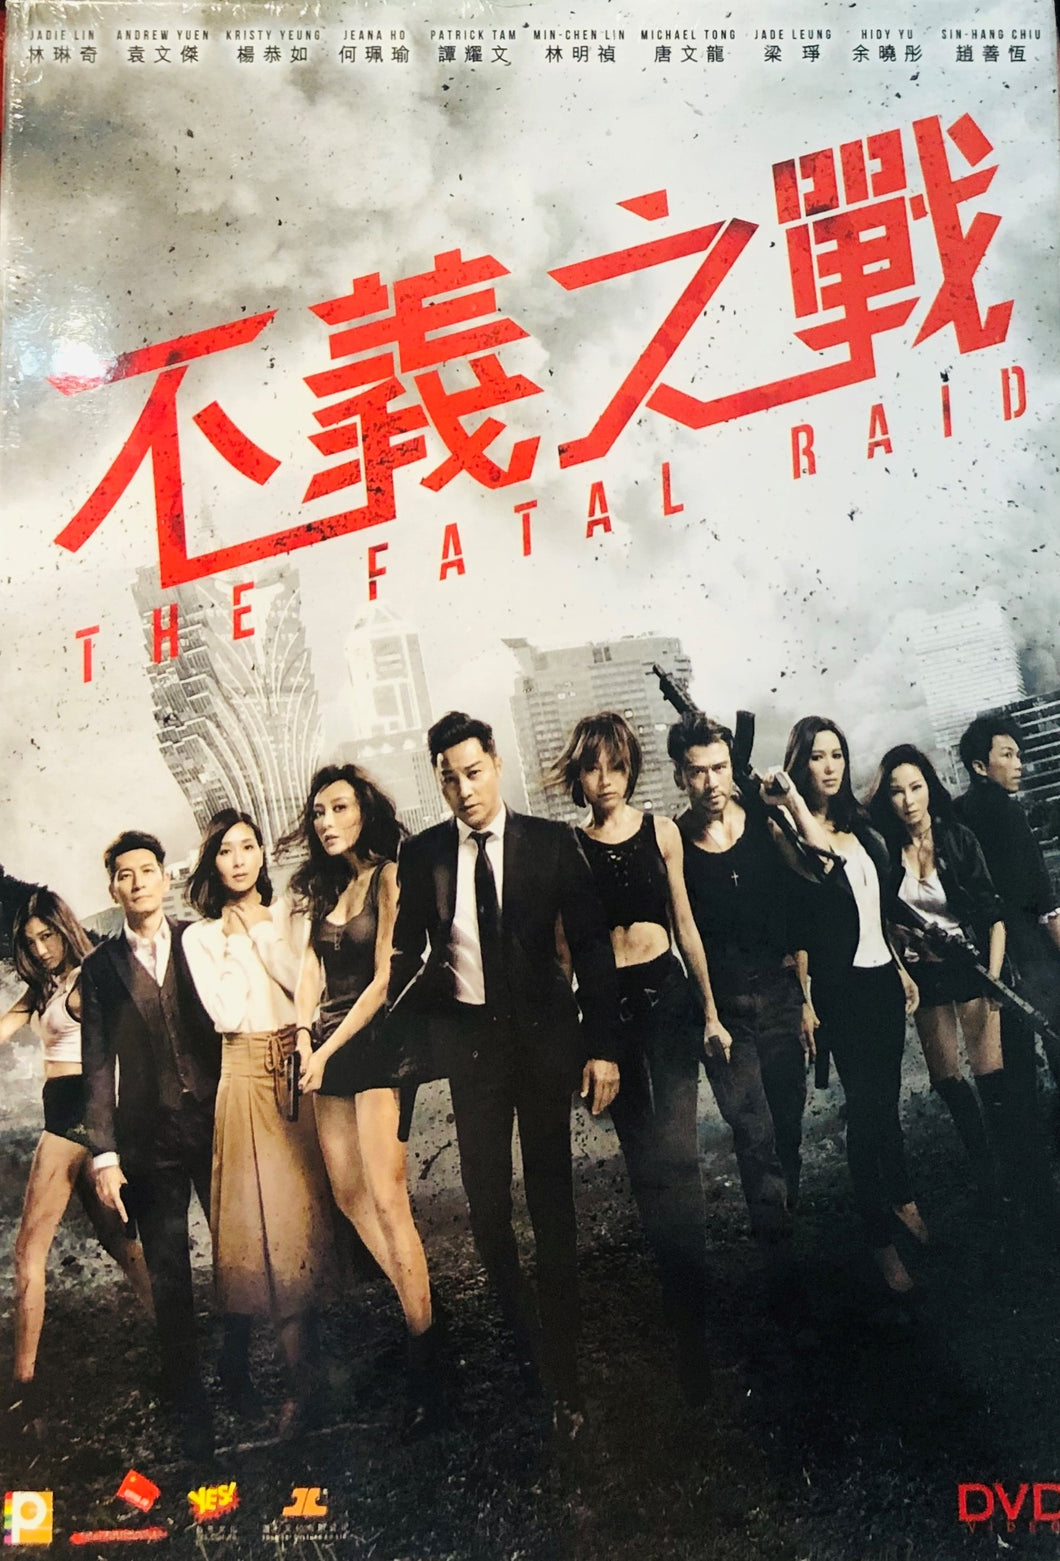 THE FATAL RAID 不義之戰 2019 (HONG KONG MOVIE) DVD ENGLISH SUBTITLES (REGION 3)